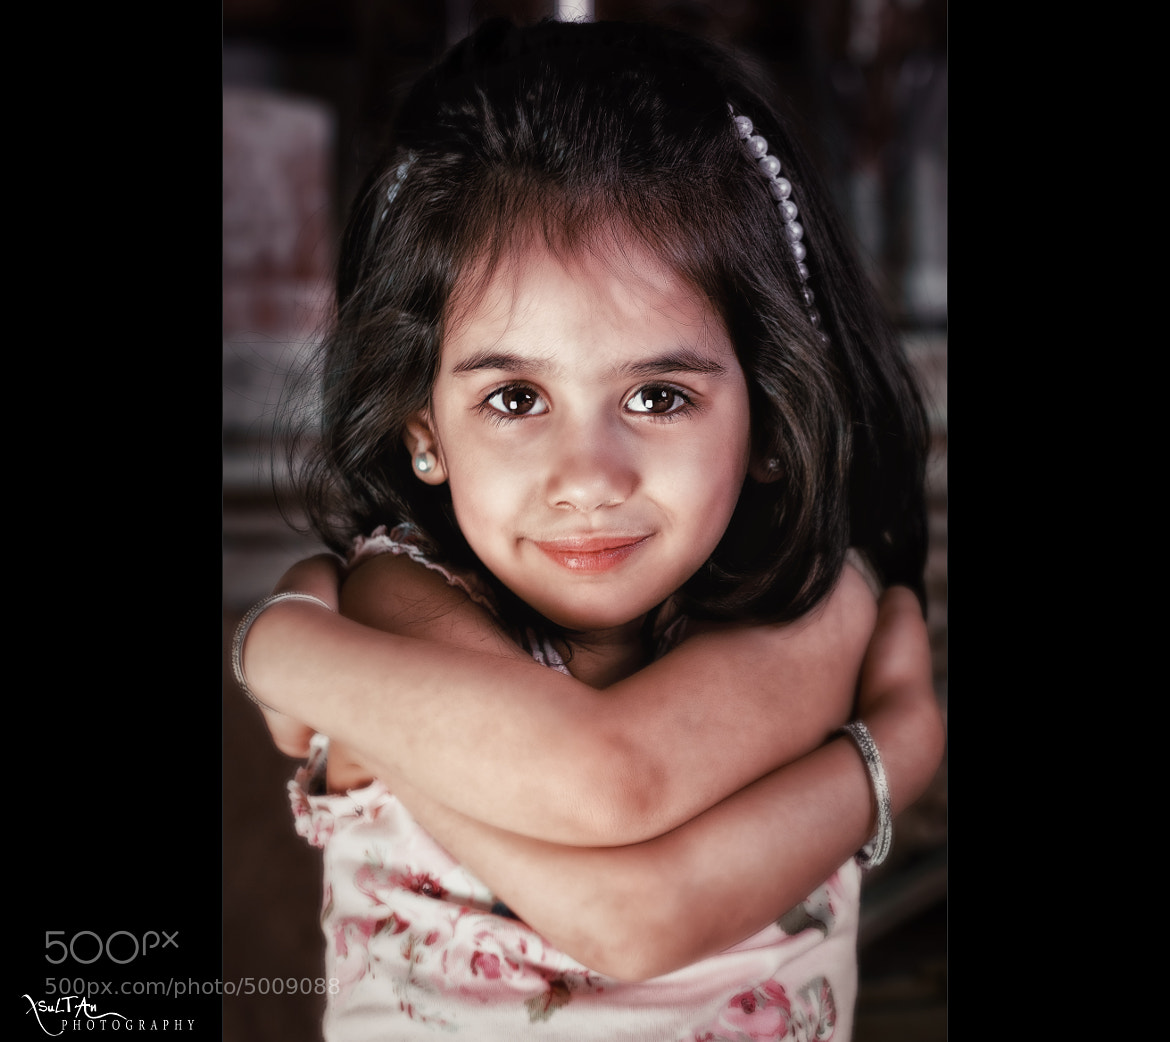 Photograph The littel girl 2 by SuLTaN AbdullaH on 500px